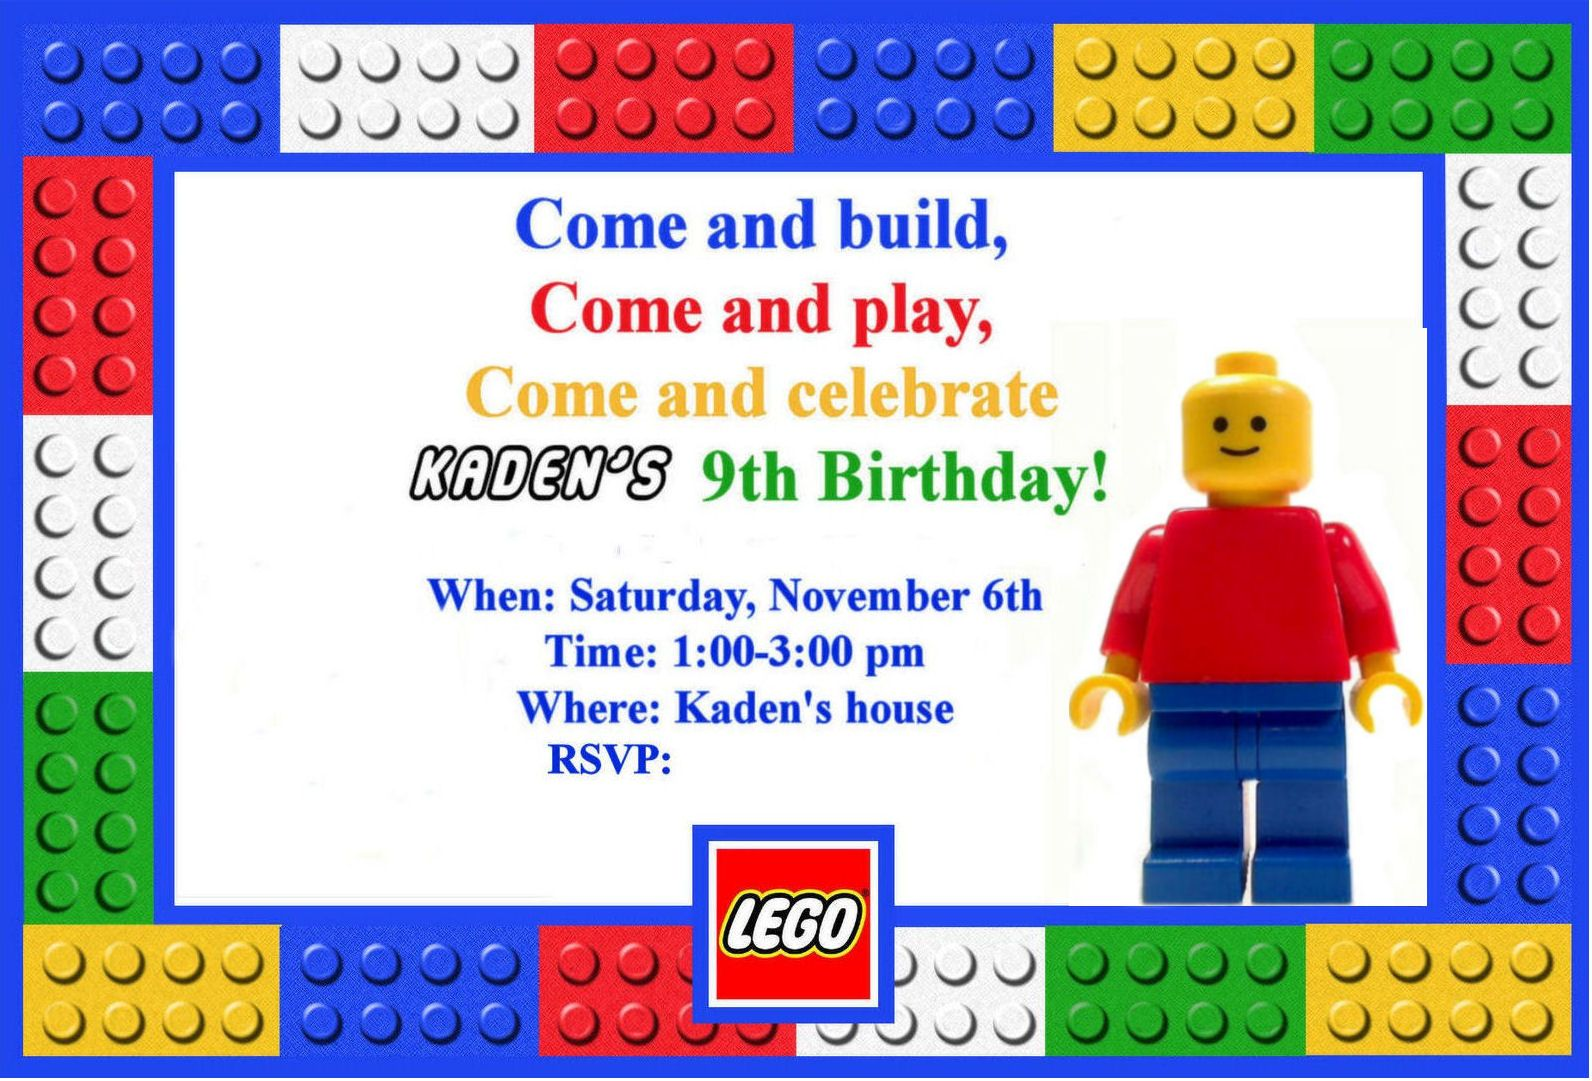 Dazzling fabulous colorful lego party invitation template for kids i threw this birthday party for my son last november right before we moved my son loves legos and requested a lego themed party stopboris Gallery